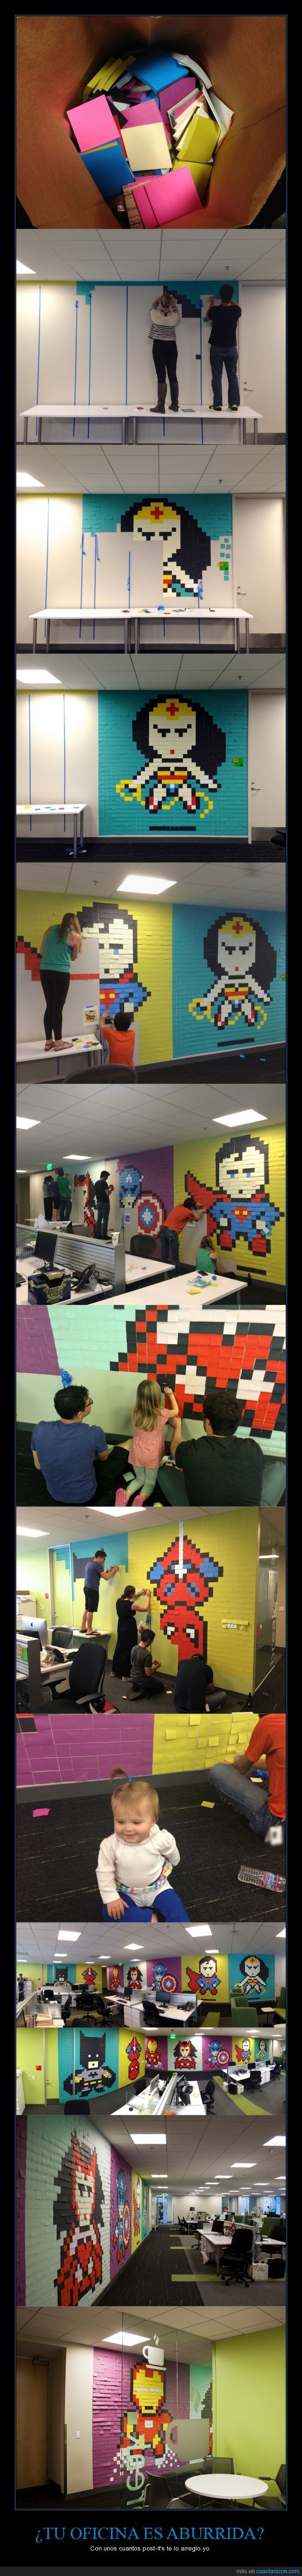 cuadrado,cuadro,iron man,papel,pegatina,pixel,post-it,postit,superheroes,superman,wonderwoman